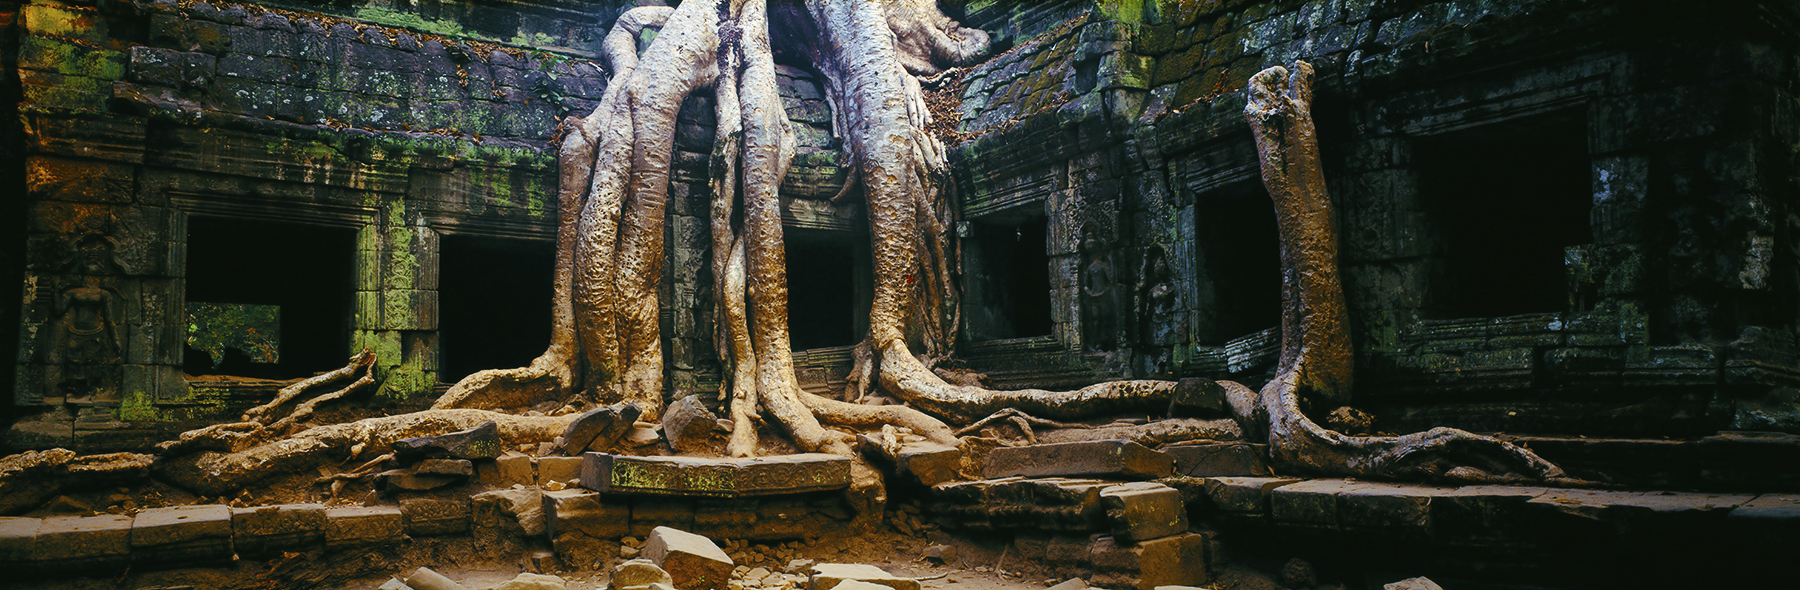 Angkor Wonder, Angkor Wat, Cambodia. A Limited Edition Fine Art Landscape Photograph by Richard Hume